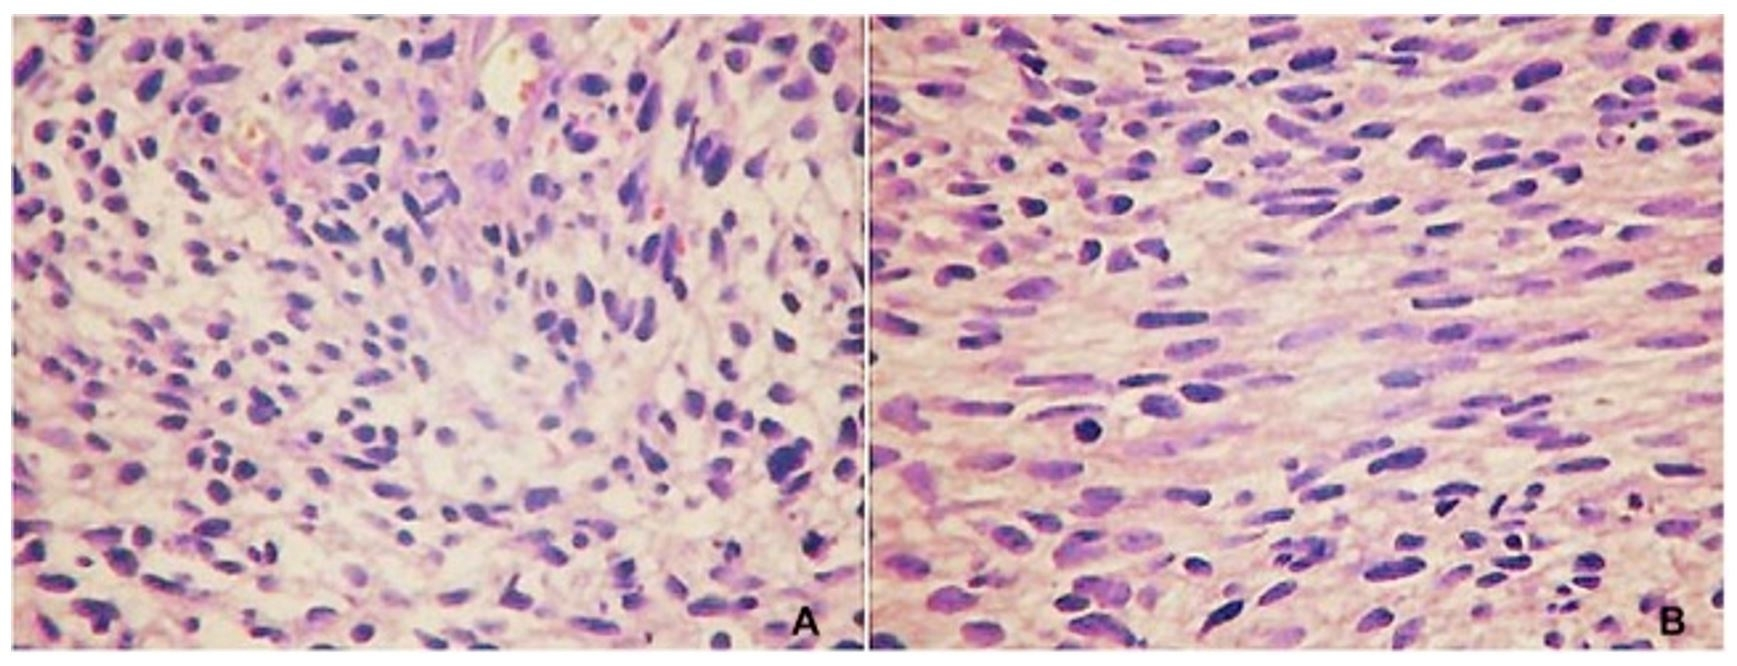 "Photomicrographs of the tumor. A - Cellular arrangements in loose bundles, perivascular disposition, and areas of myxoid aspect. The cells are elongated, with poorly defined borders, and the nuclei are equally elongated and atypical (HE, 400×). B - Cellular arrangements in bundles with occasional ""fishbone"" arrangement, fibrosarcoma-like. Note the presence of mitoses (HE, 400×)."